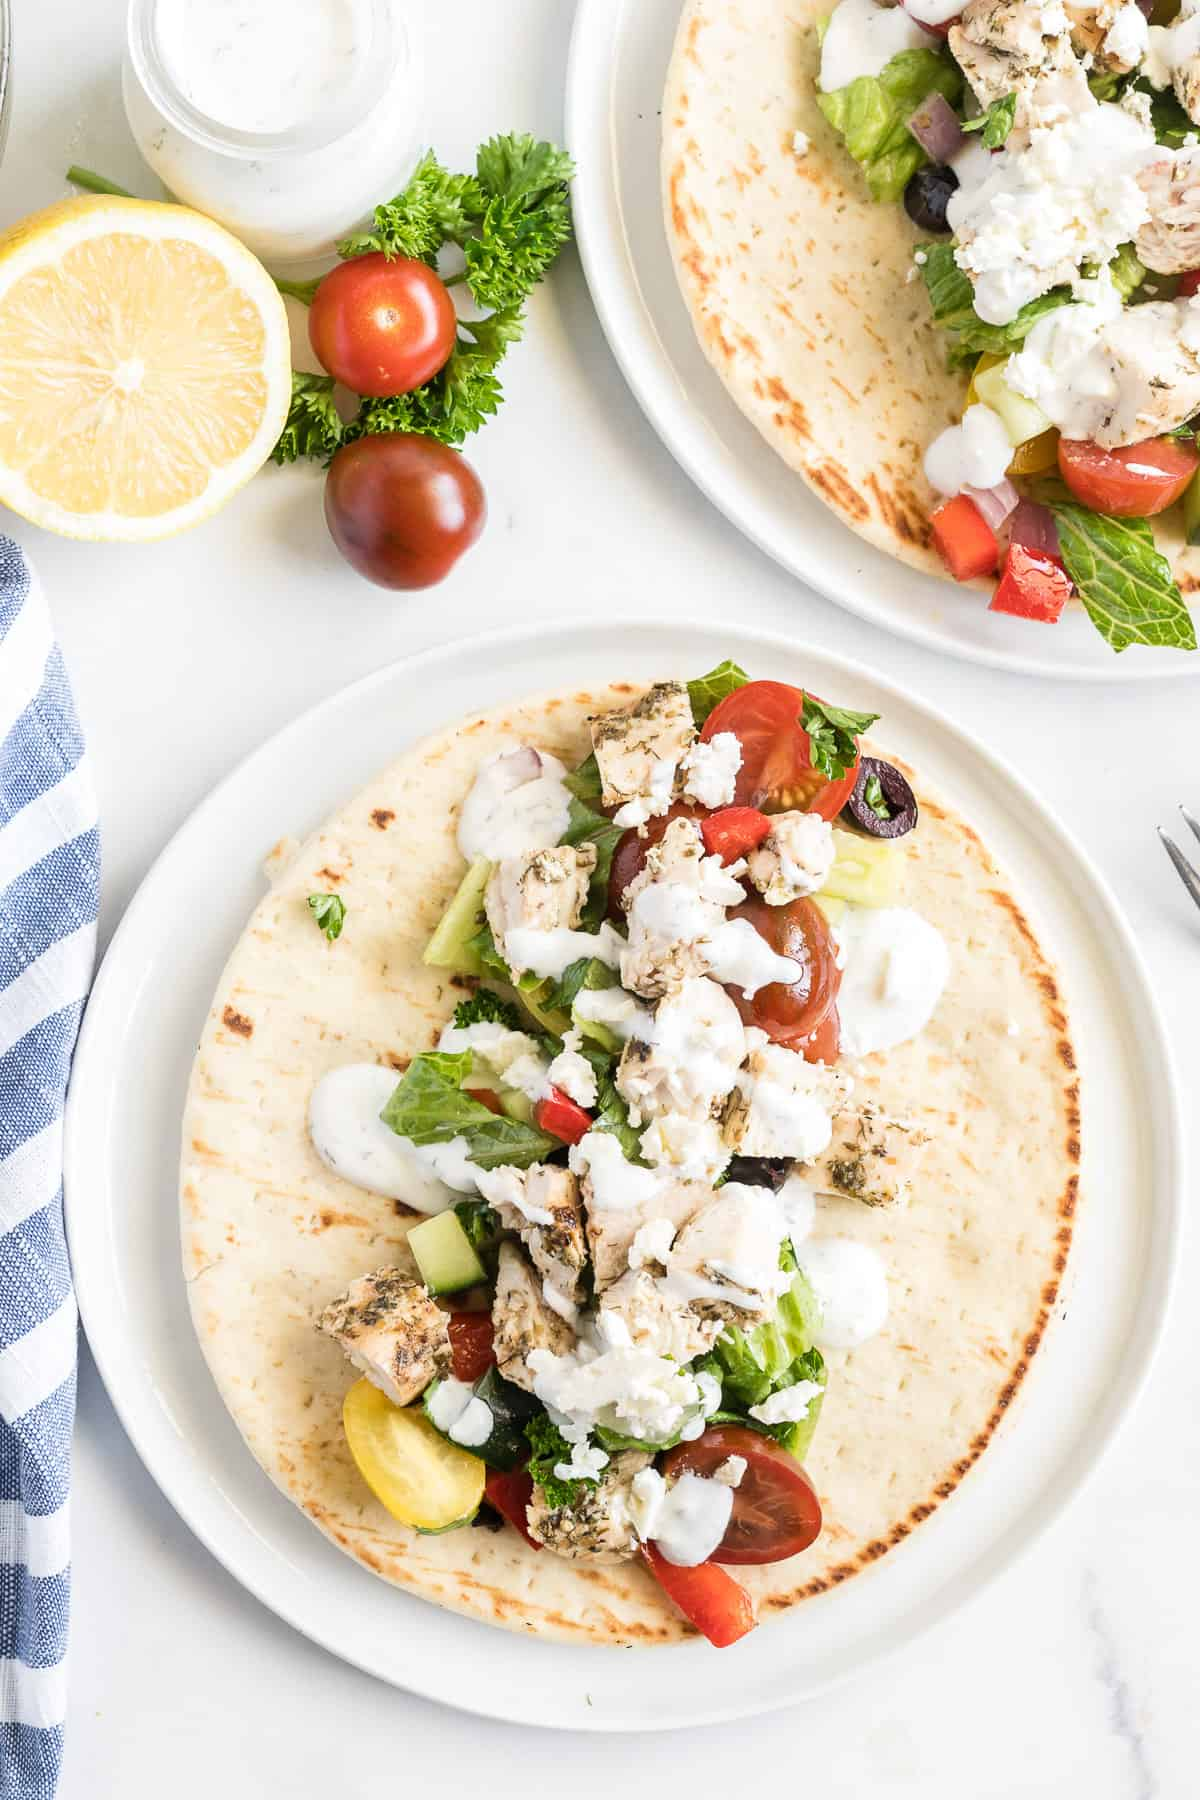 A pita on a plate layered with lettuce, vegetables, and grilled Greek chicken.